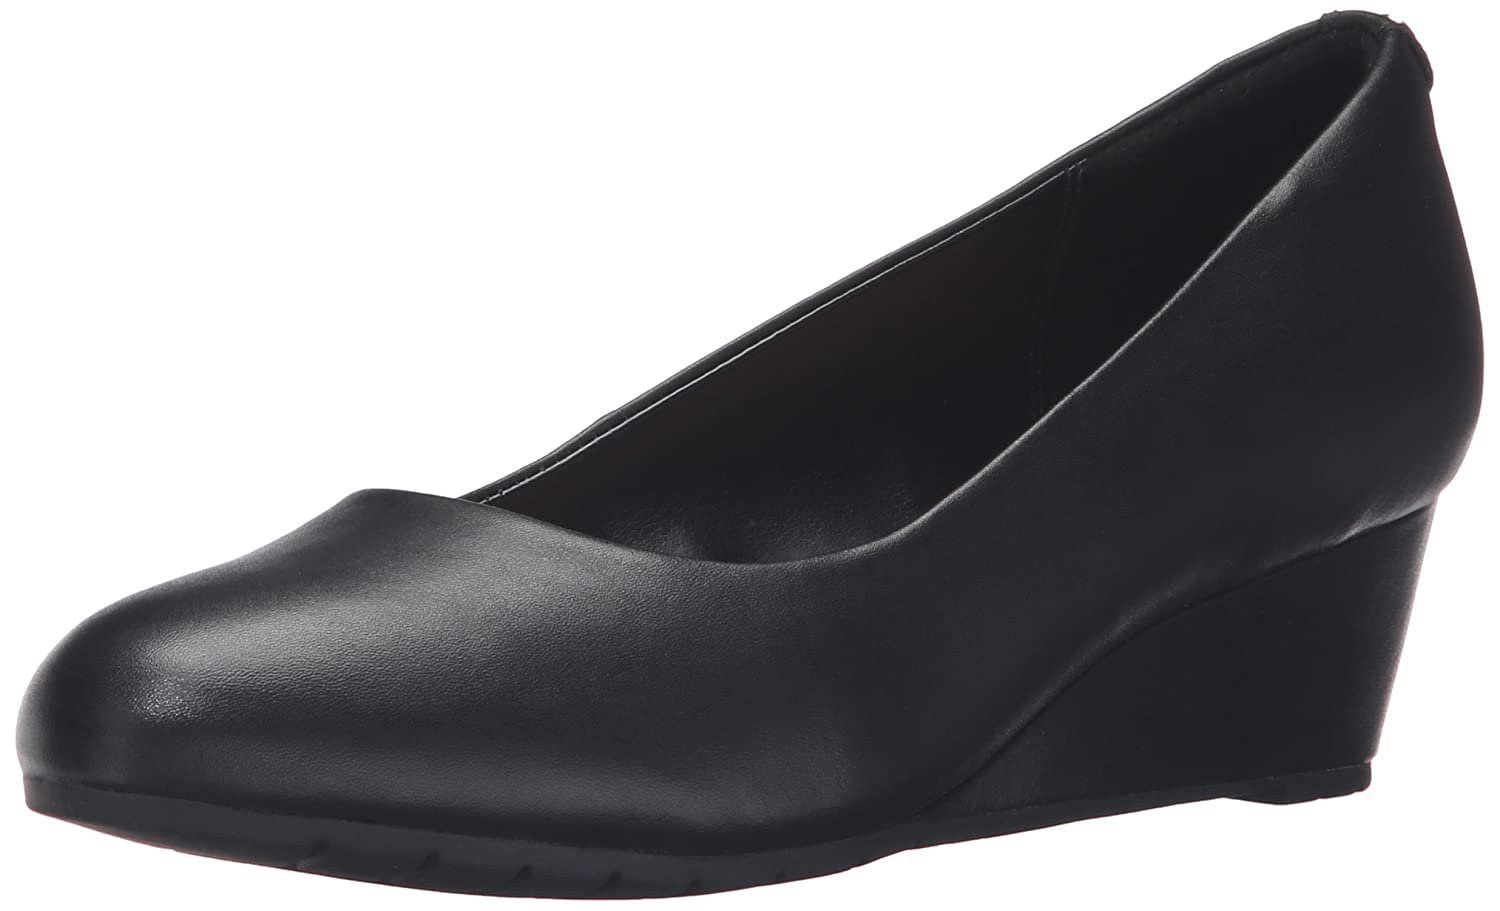 CLARKS Women's Vendra Bloom Wedge Pump B0195EECVO 8 W US|Black Leather